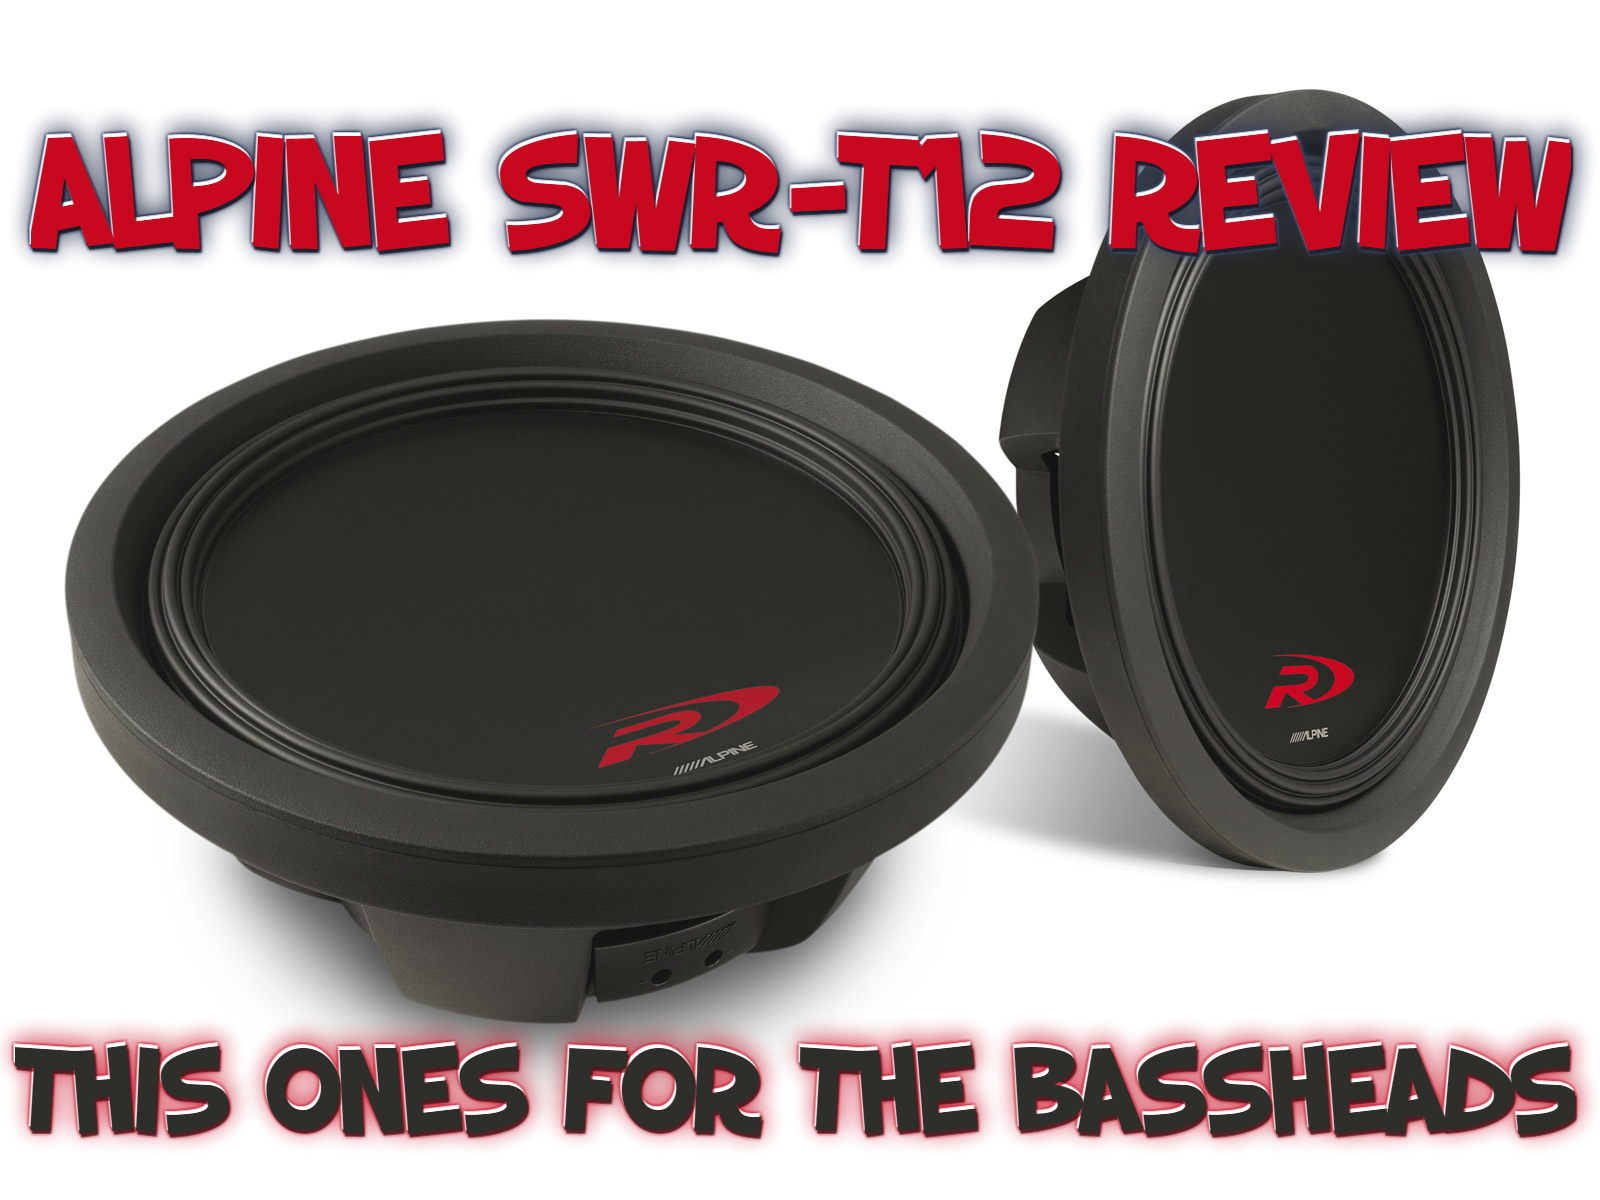 The Official Kicker Hideaway Review -The Kicker 11HS8 Hideaway